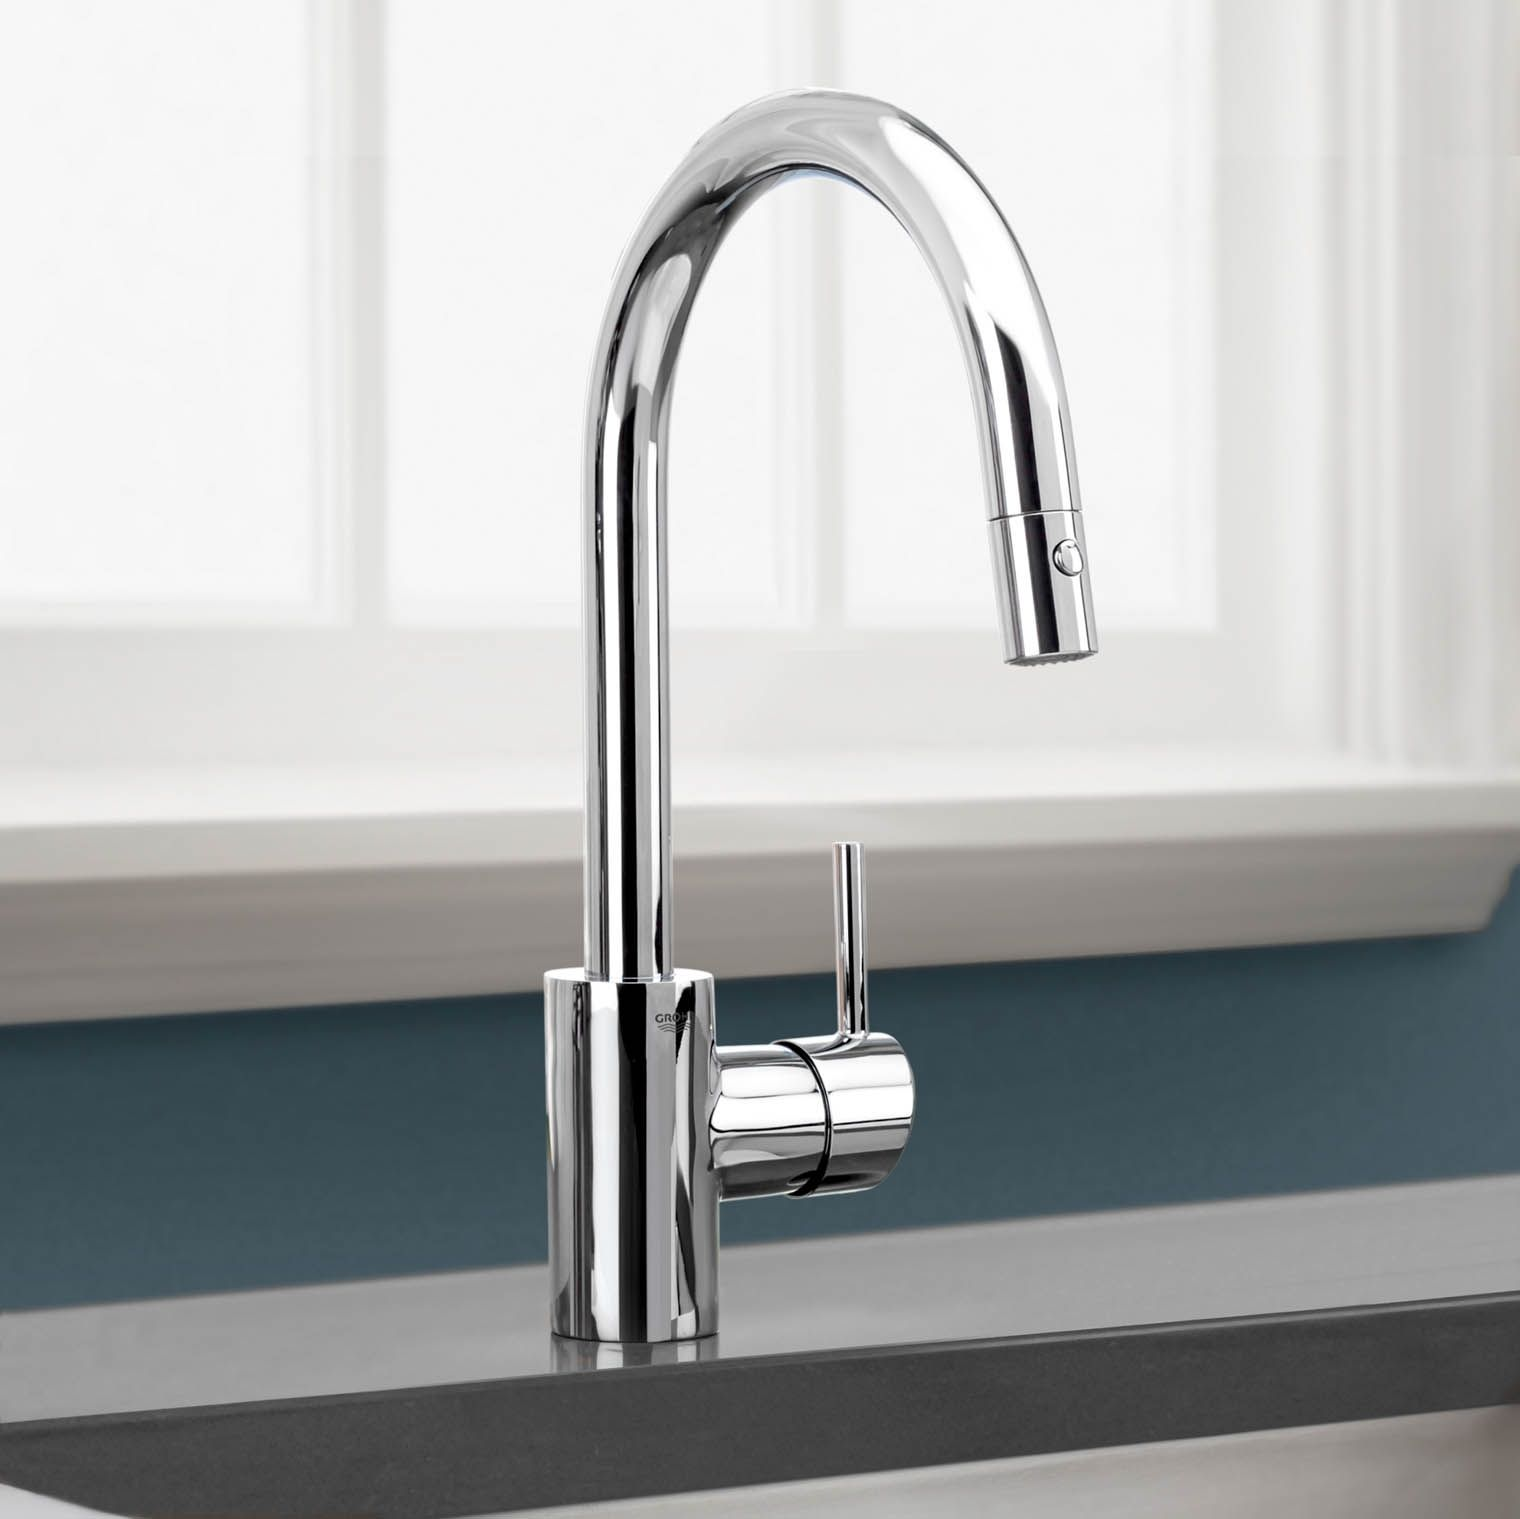 metris metro higharc hansgrohe design faucet axor cartridge for your kitchen faucets